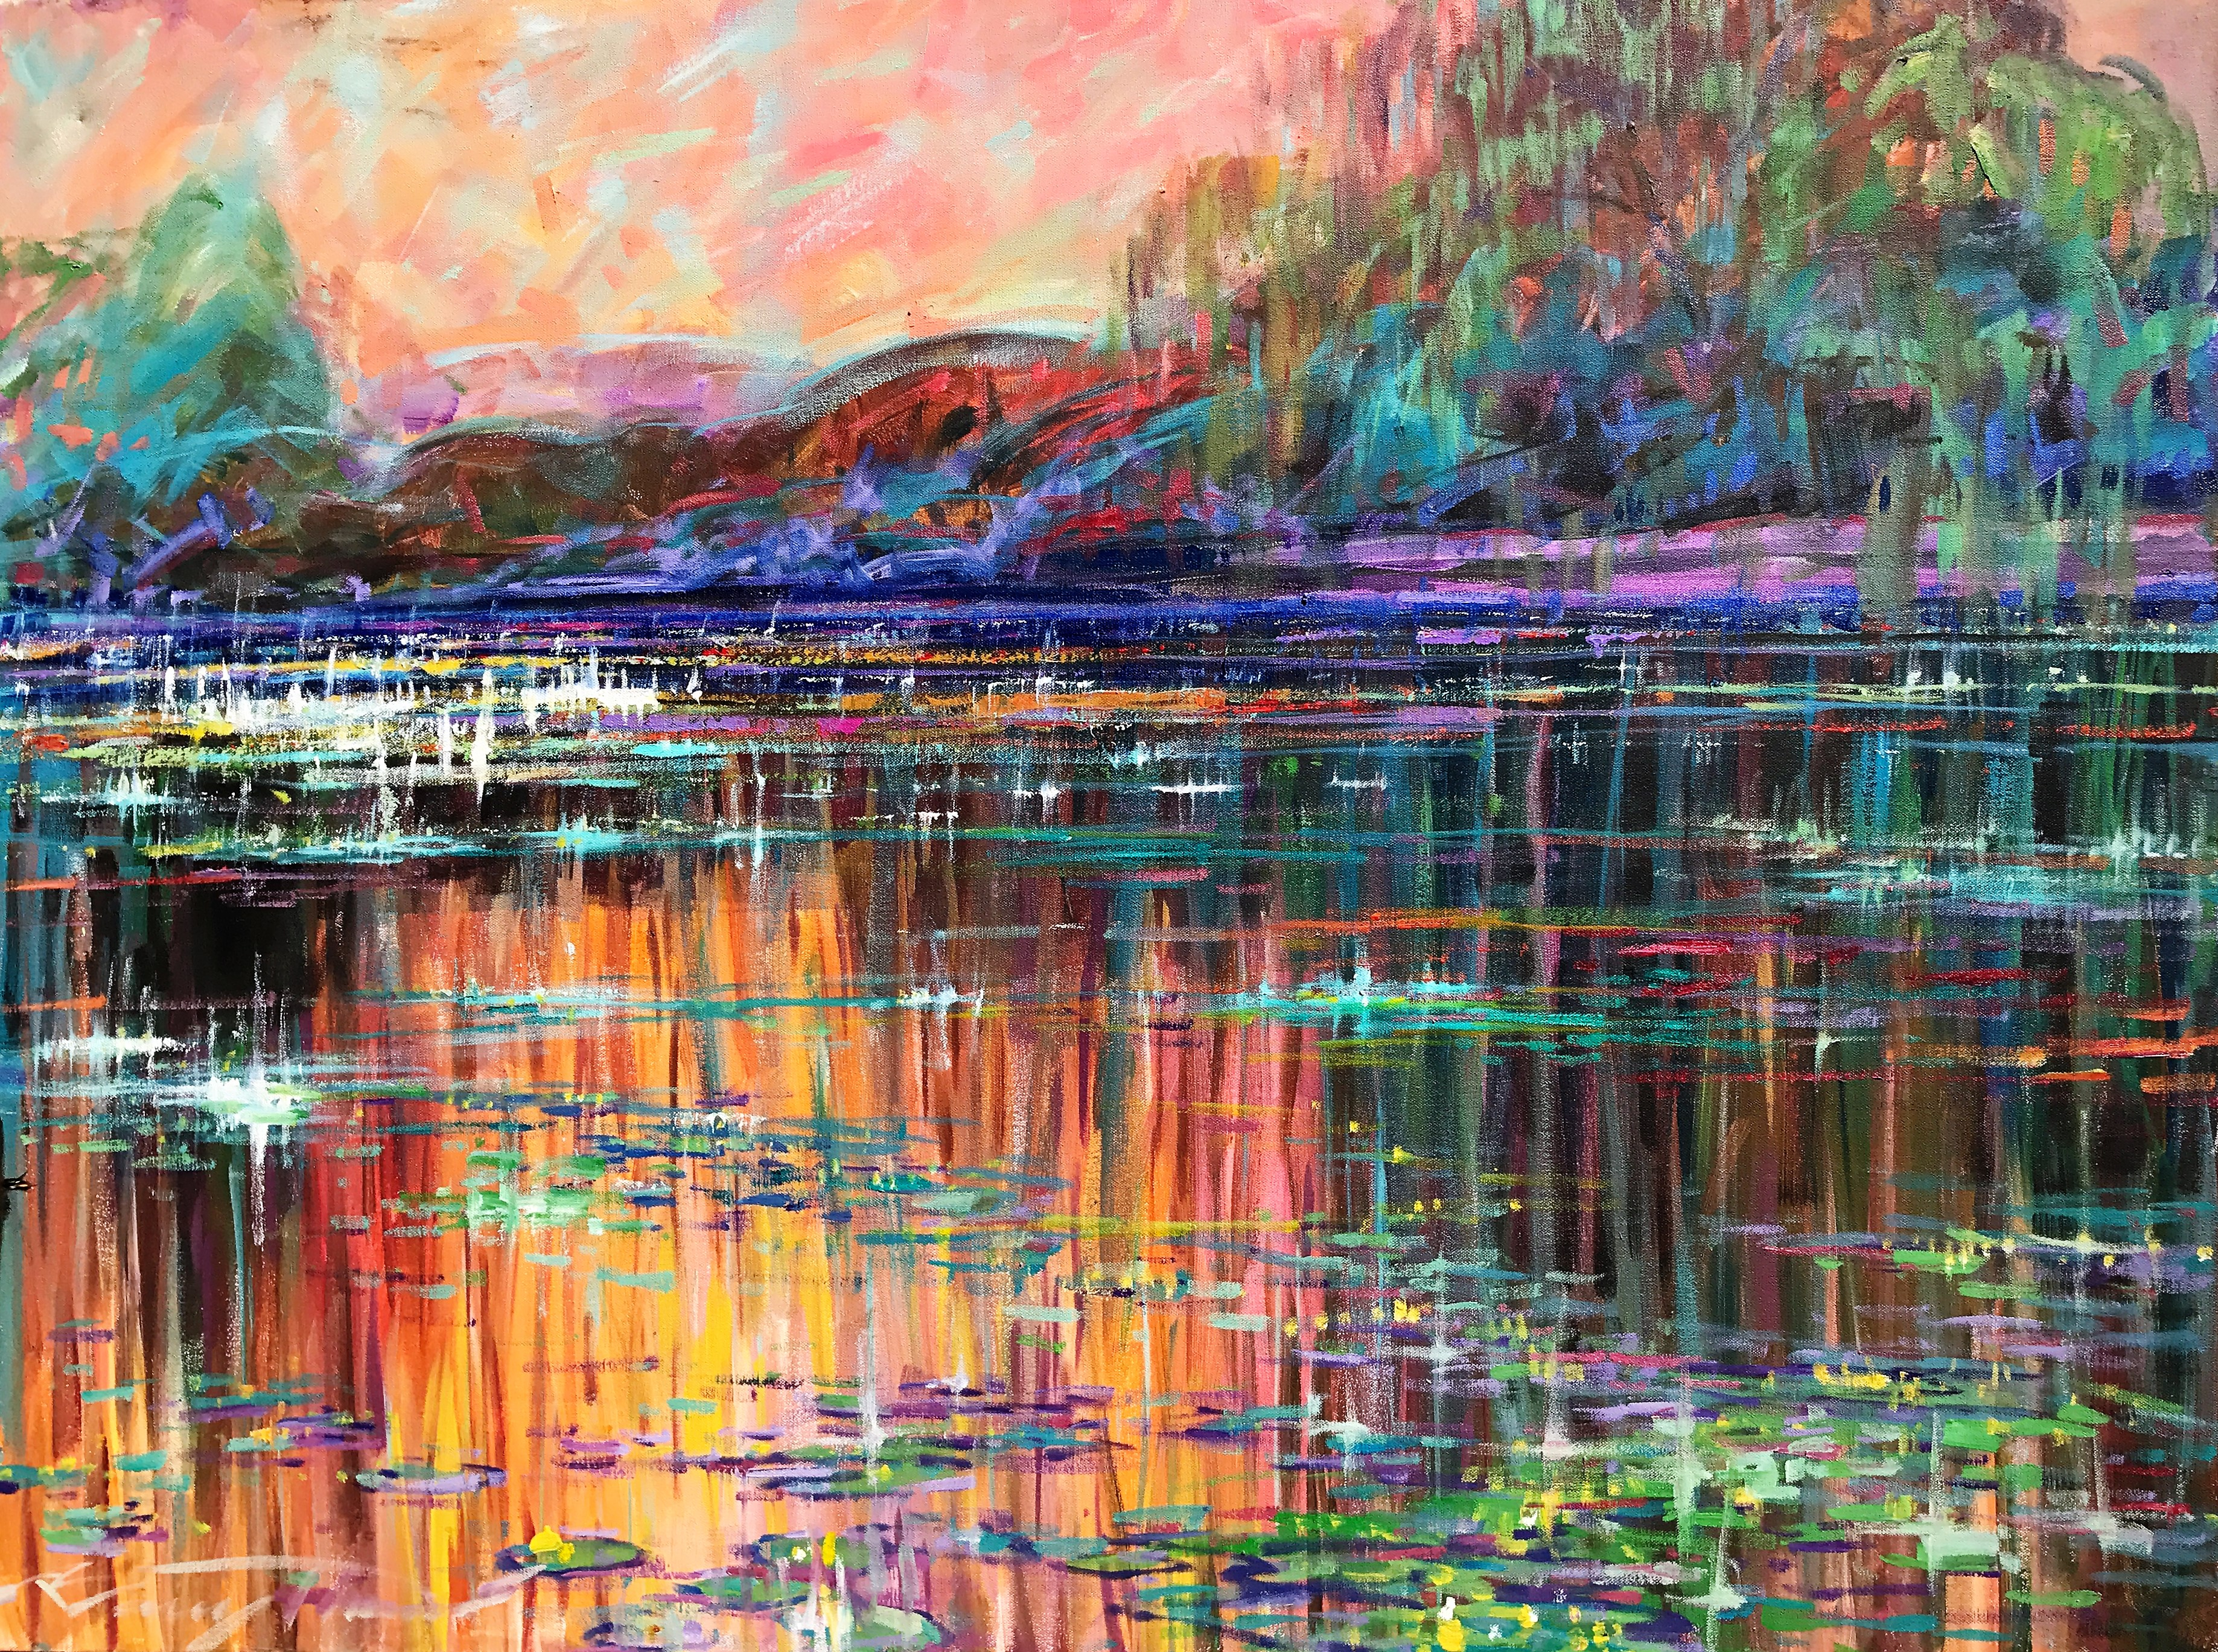 Monets Water Lillies